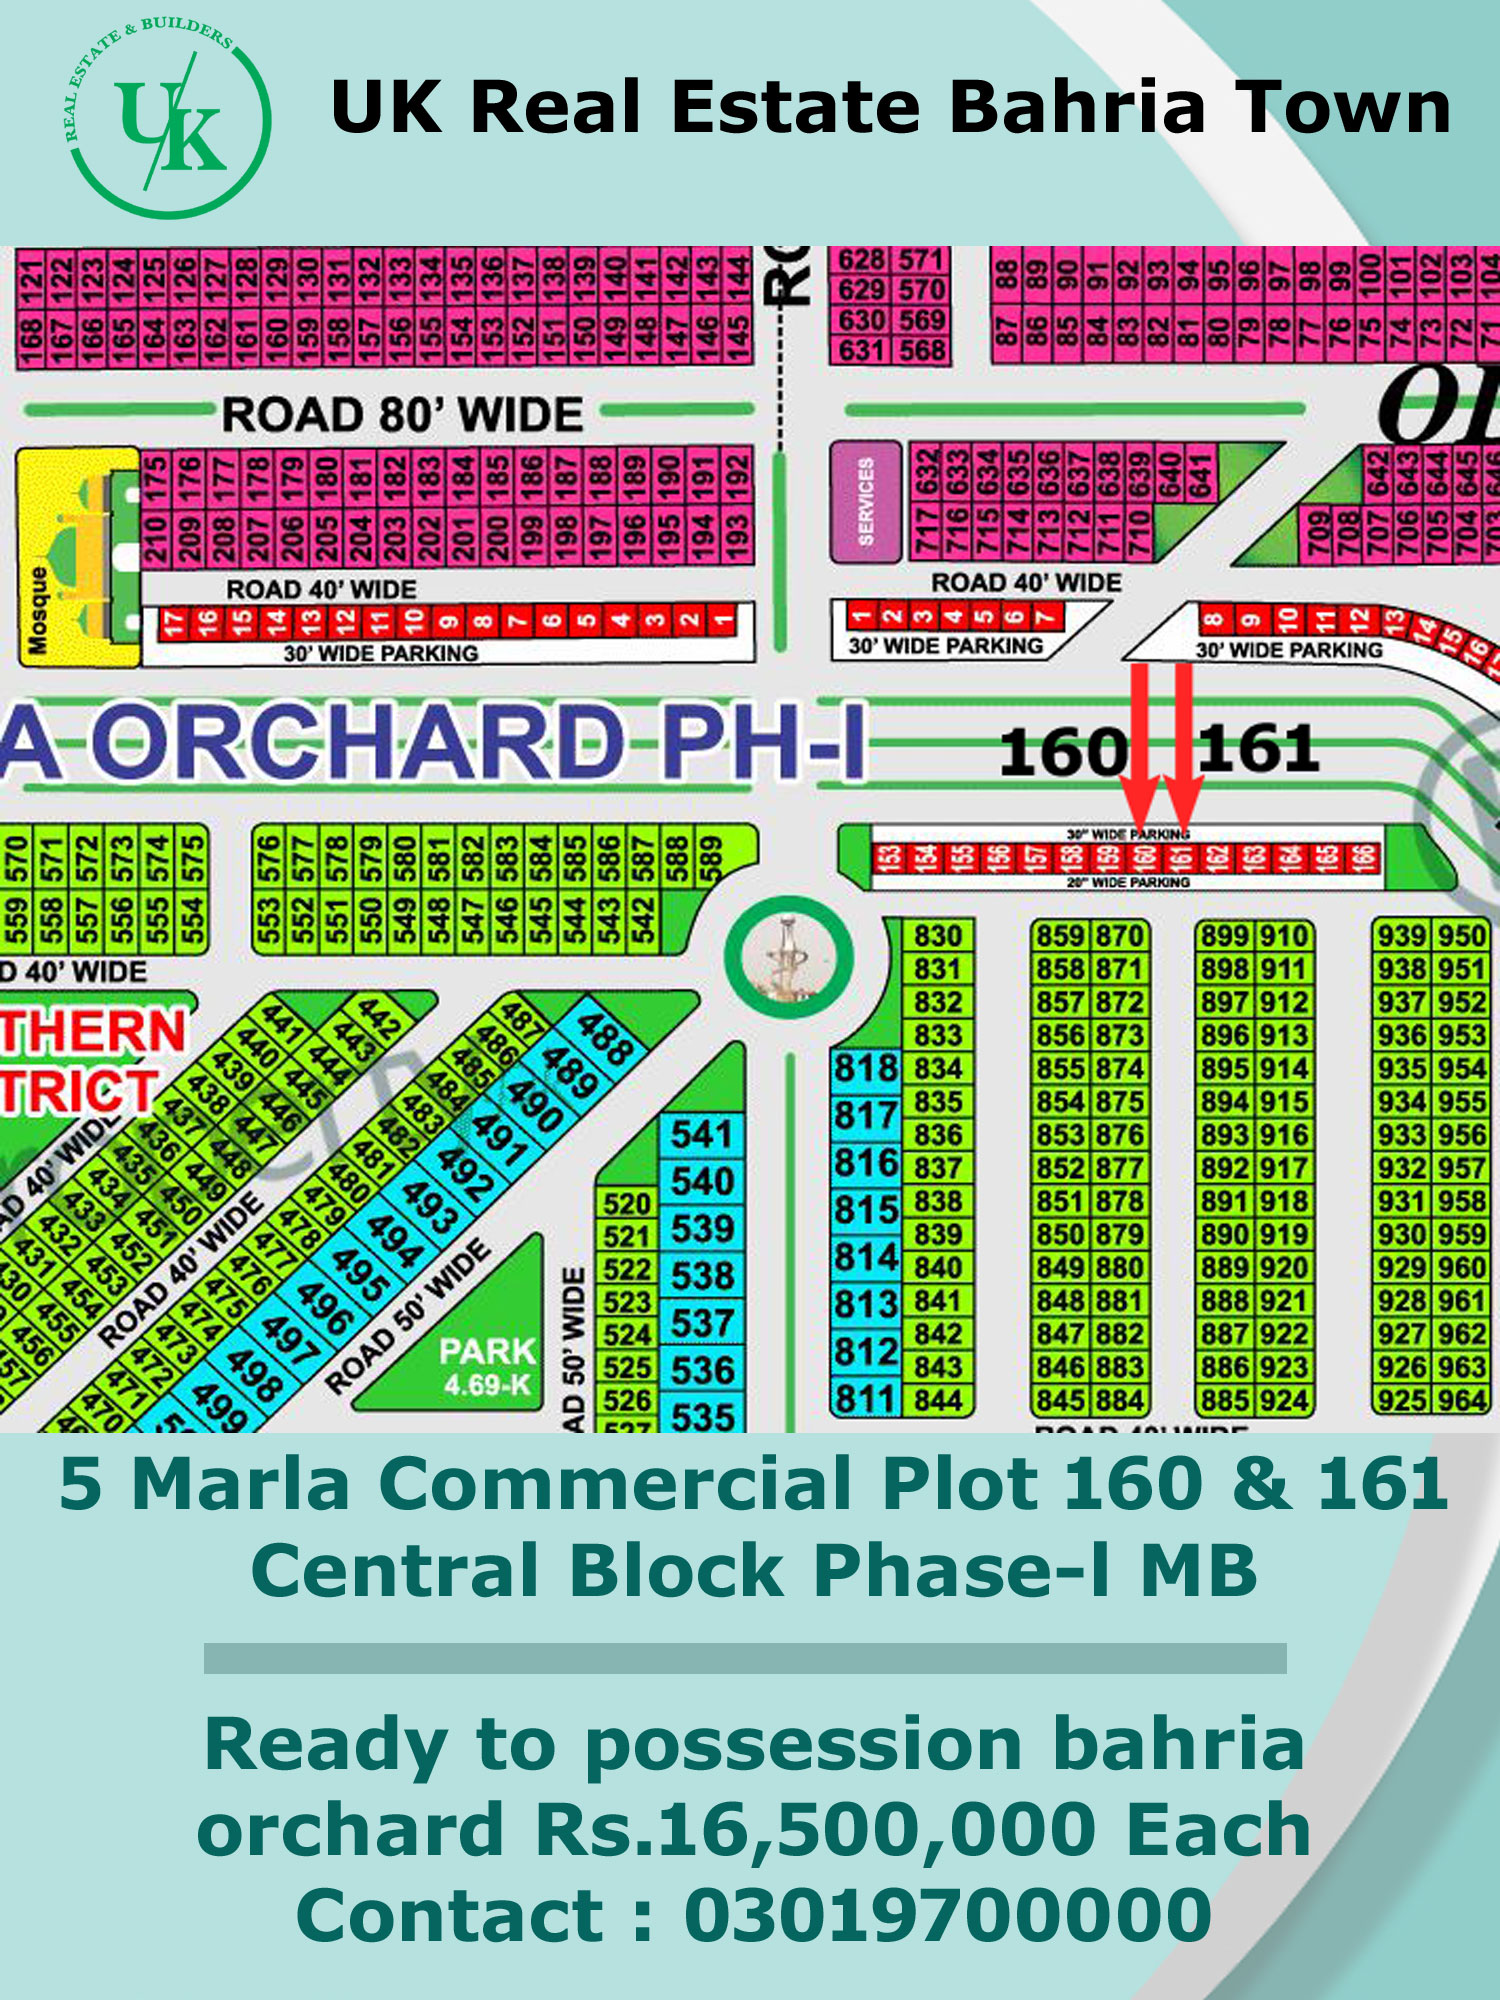 5 Marla Commercial Plots 160 & 161 Central Block Phase-l Main Boulevard Ready to possession bahria orchard Rs.16,500,000 Each